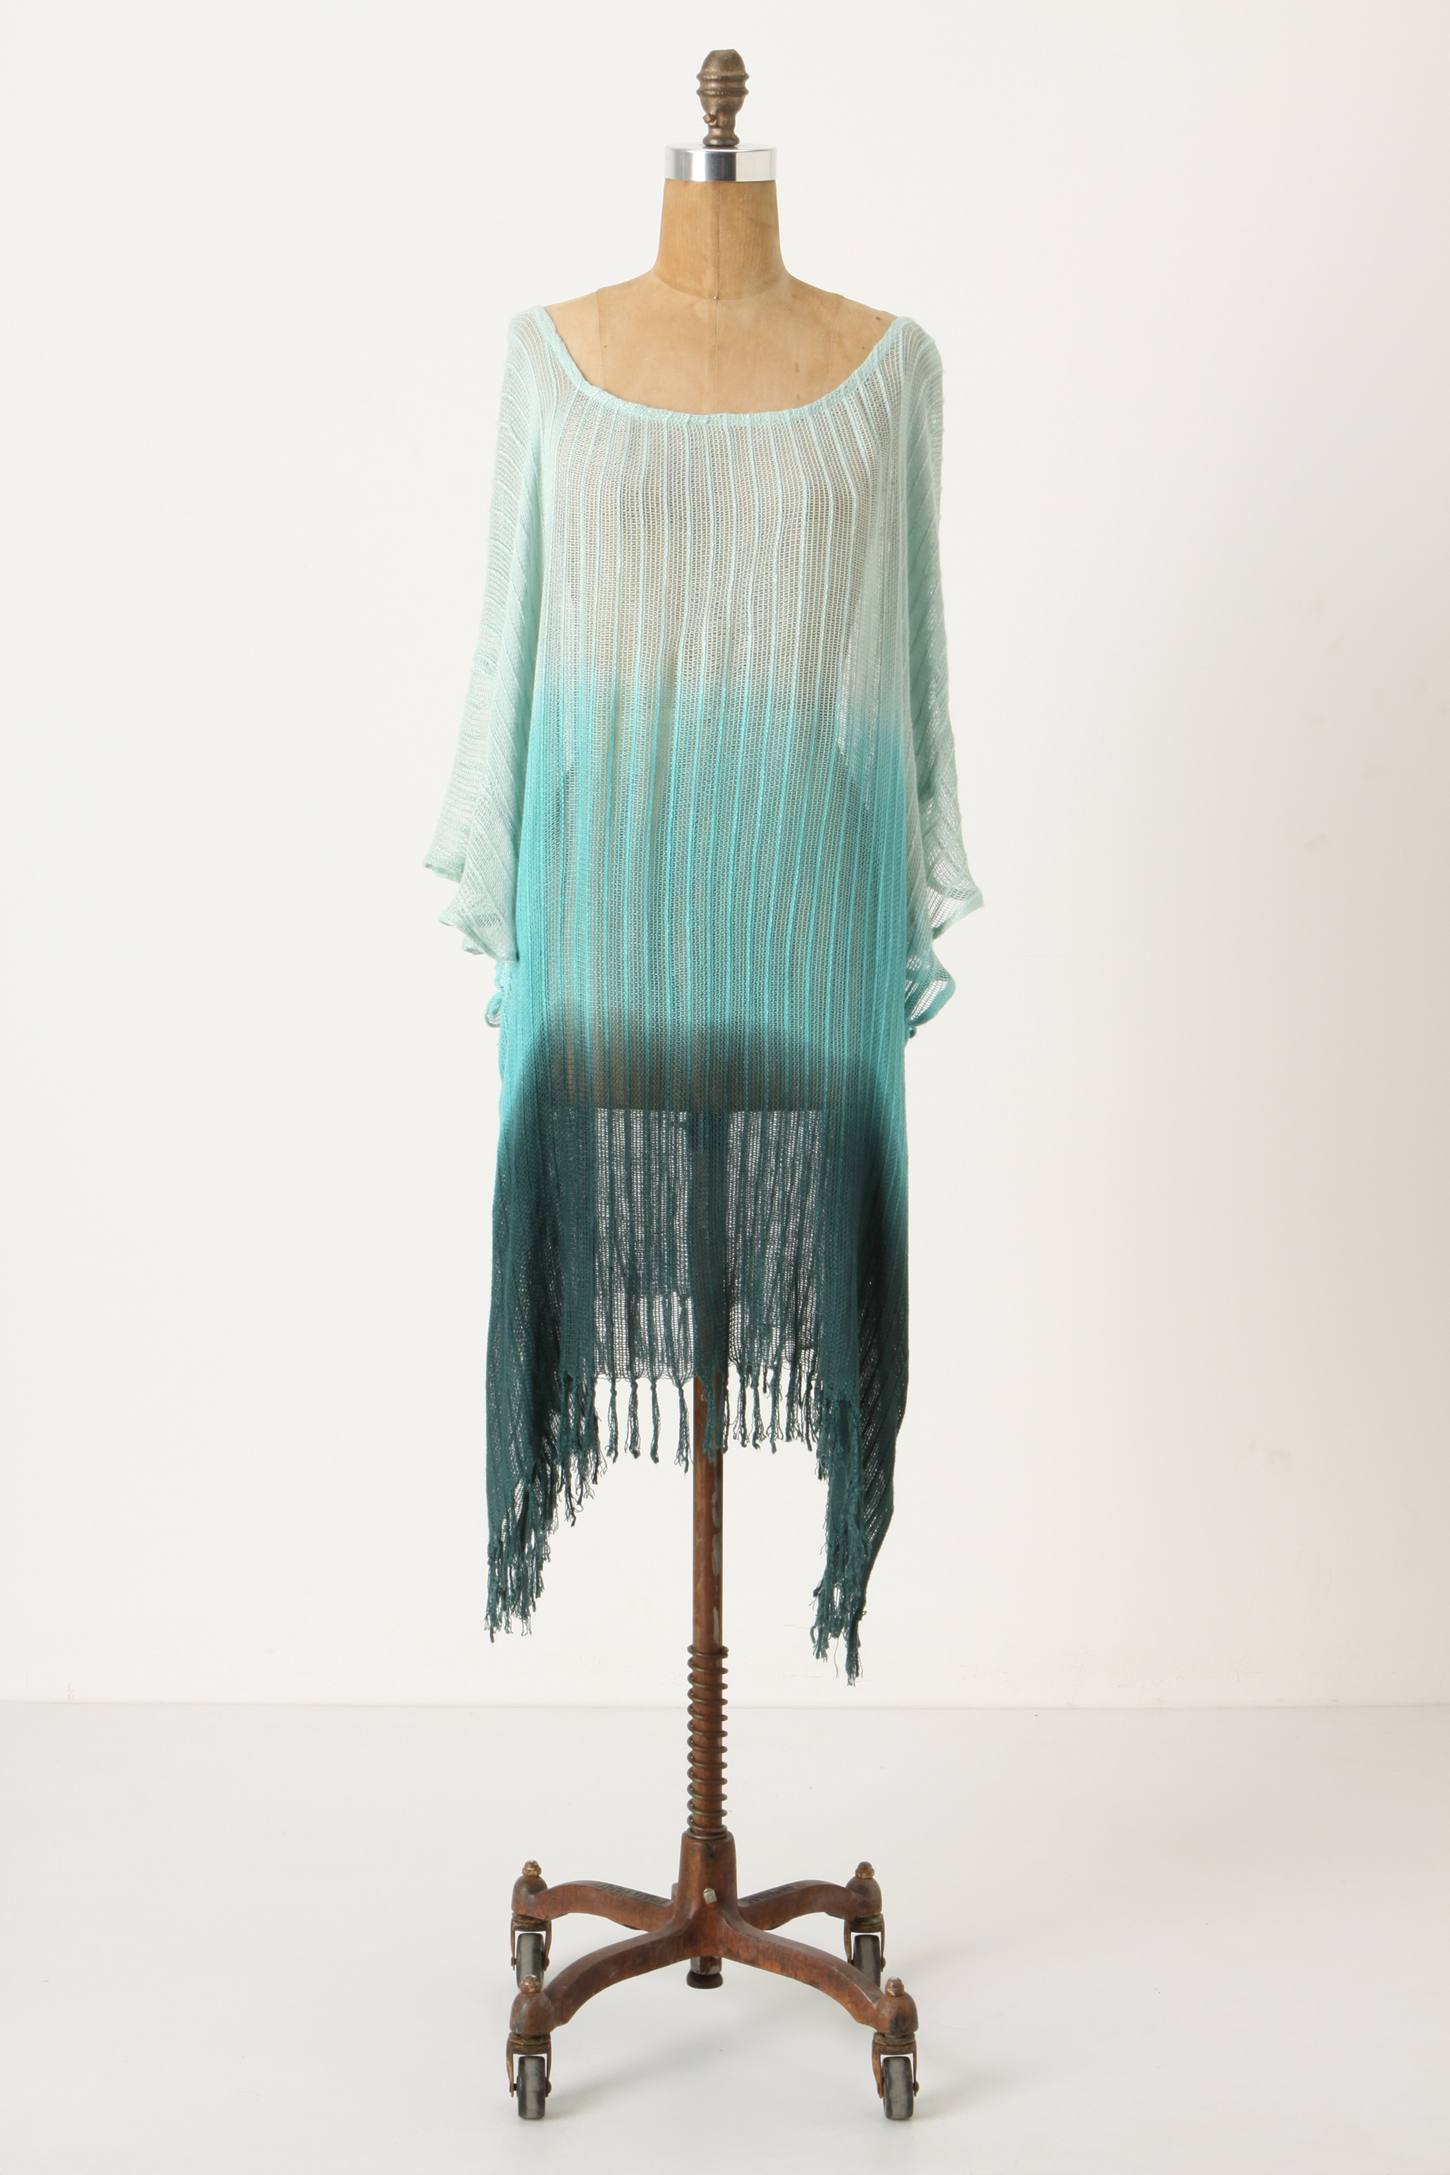 Anthropologie - Fade Into Green Cover-Up